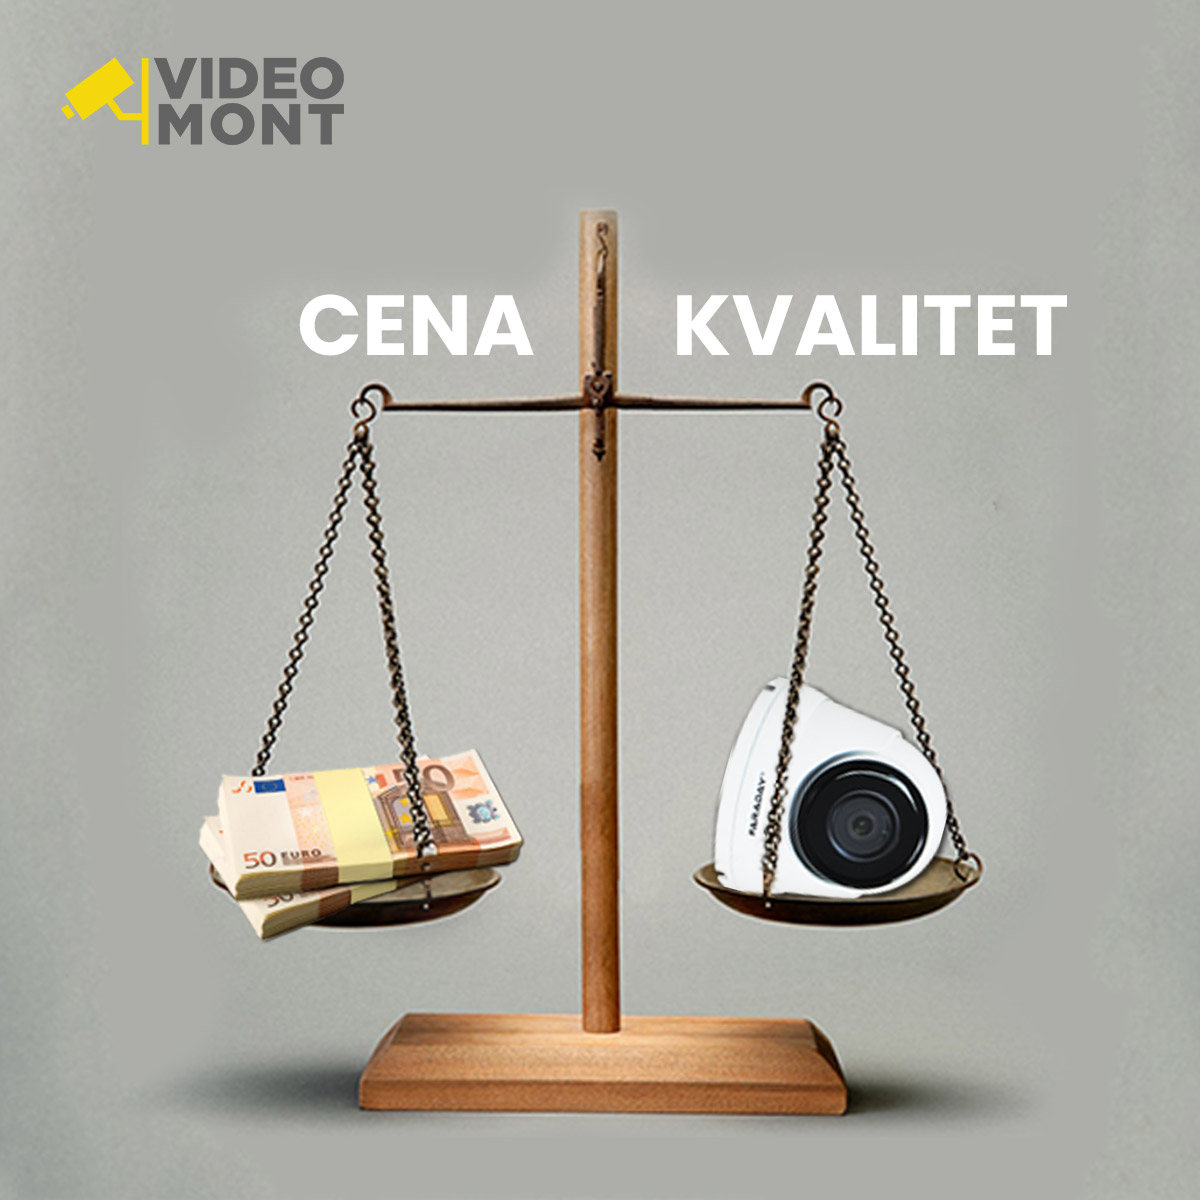 Video nadzor - cena i kvalitet